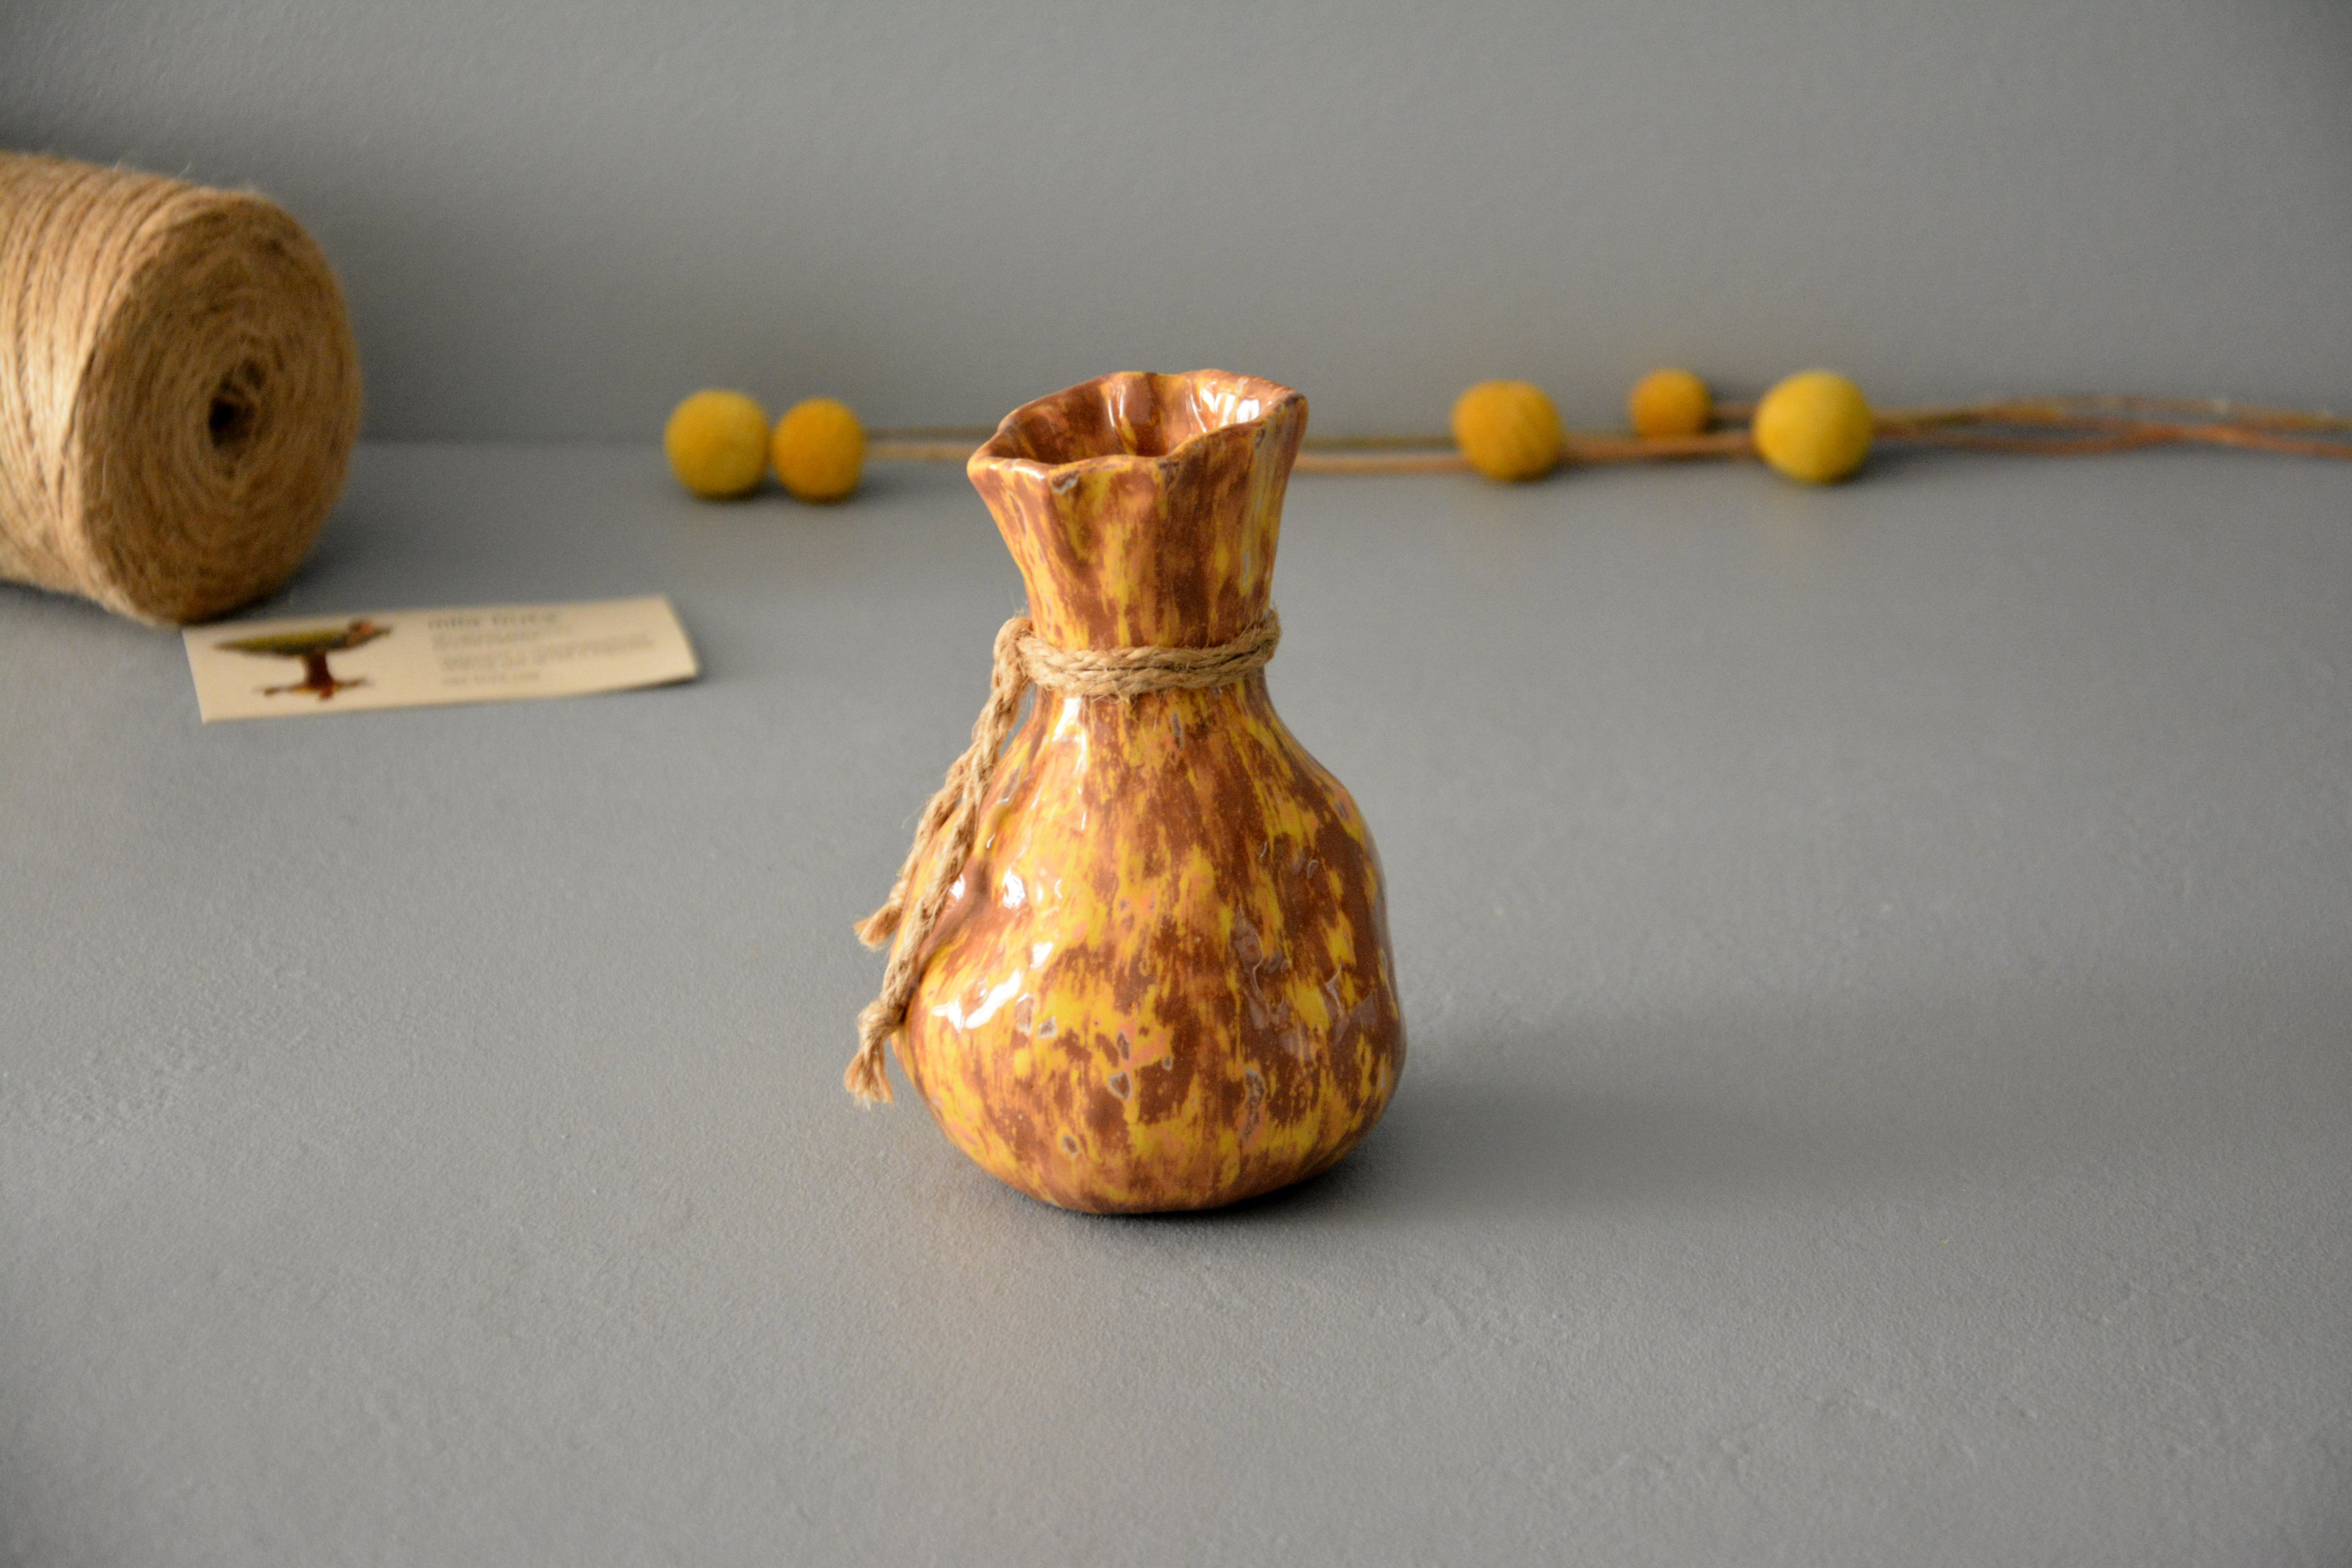 Ceramic small vase candlestick yellow-brown bagful, height - 13 cm, photo 7 of 8. 1199.